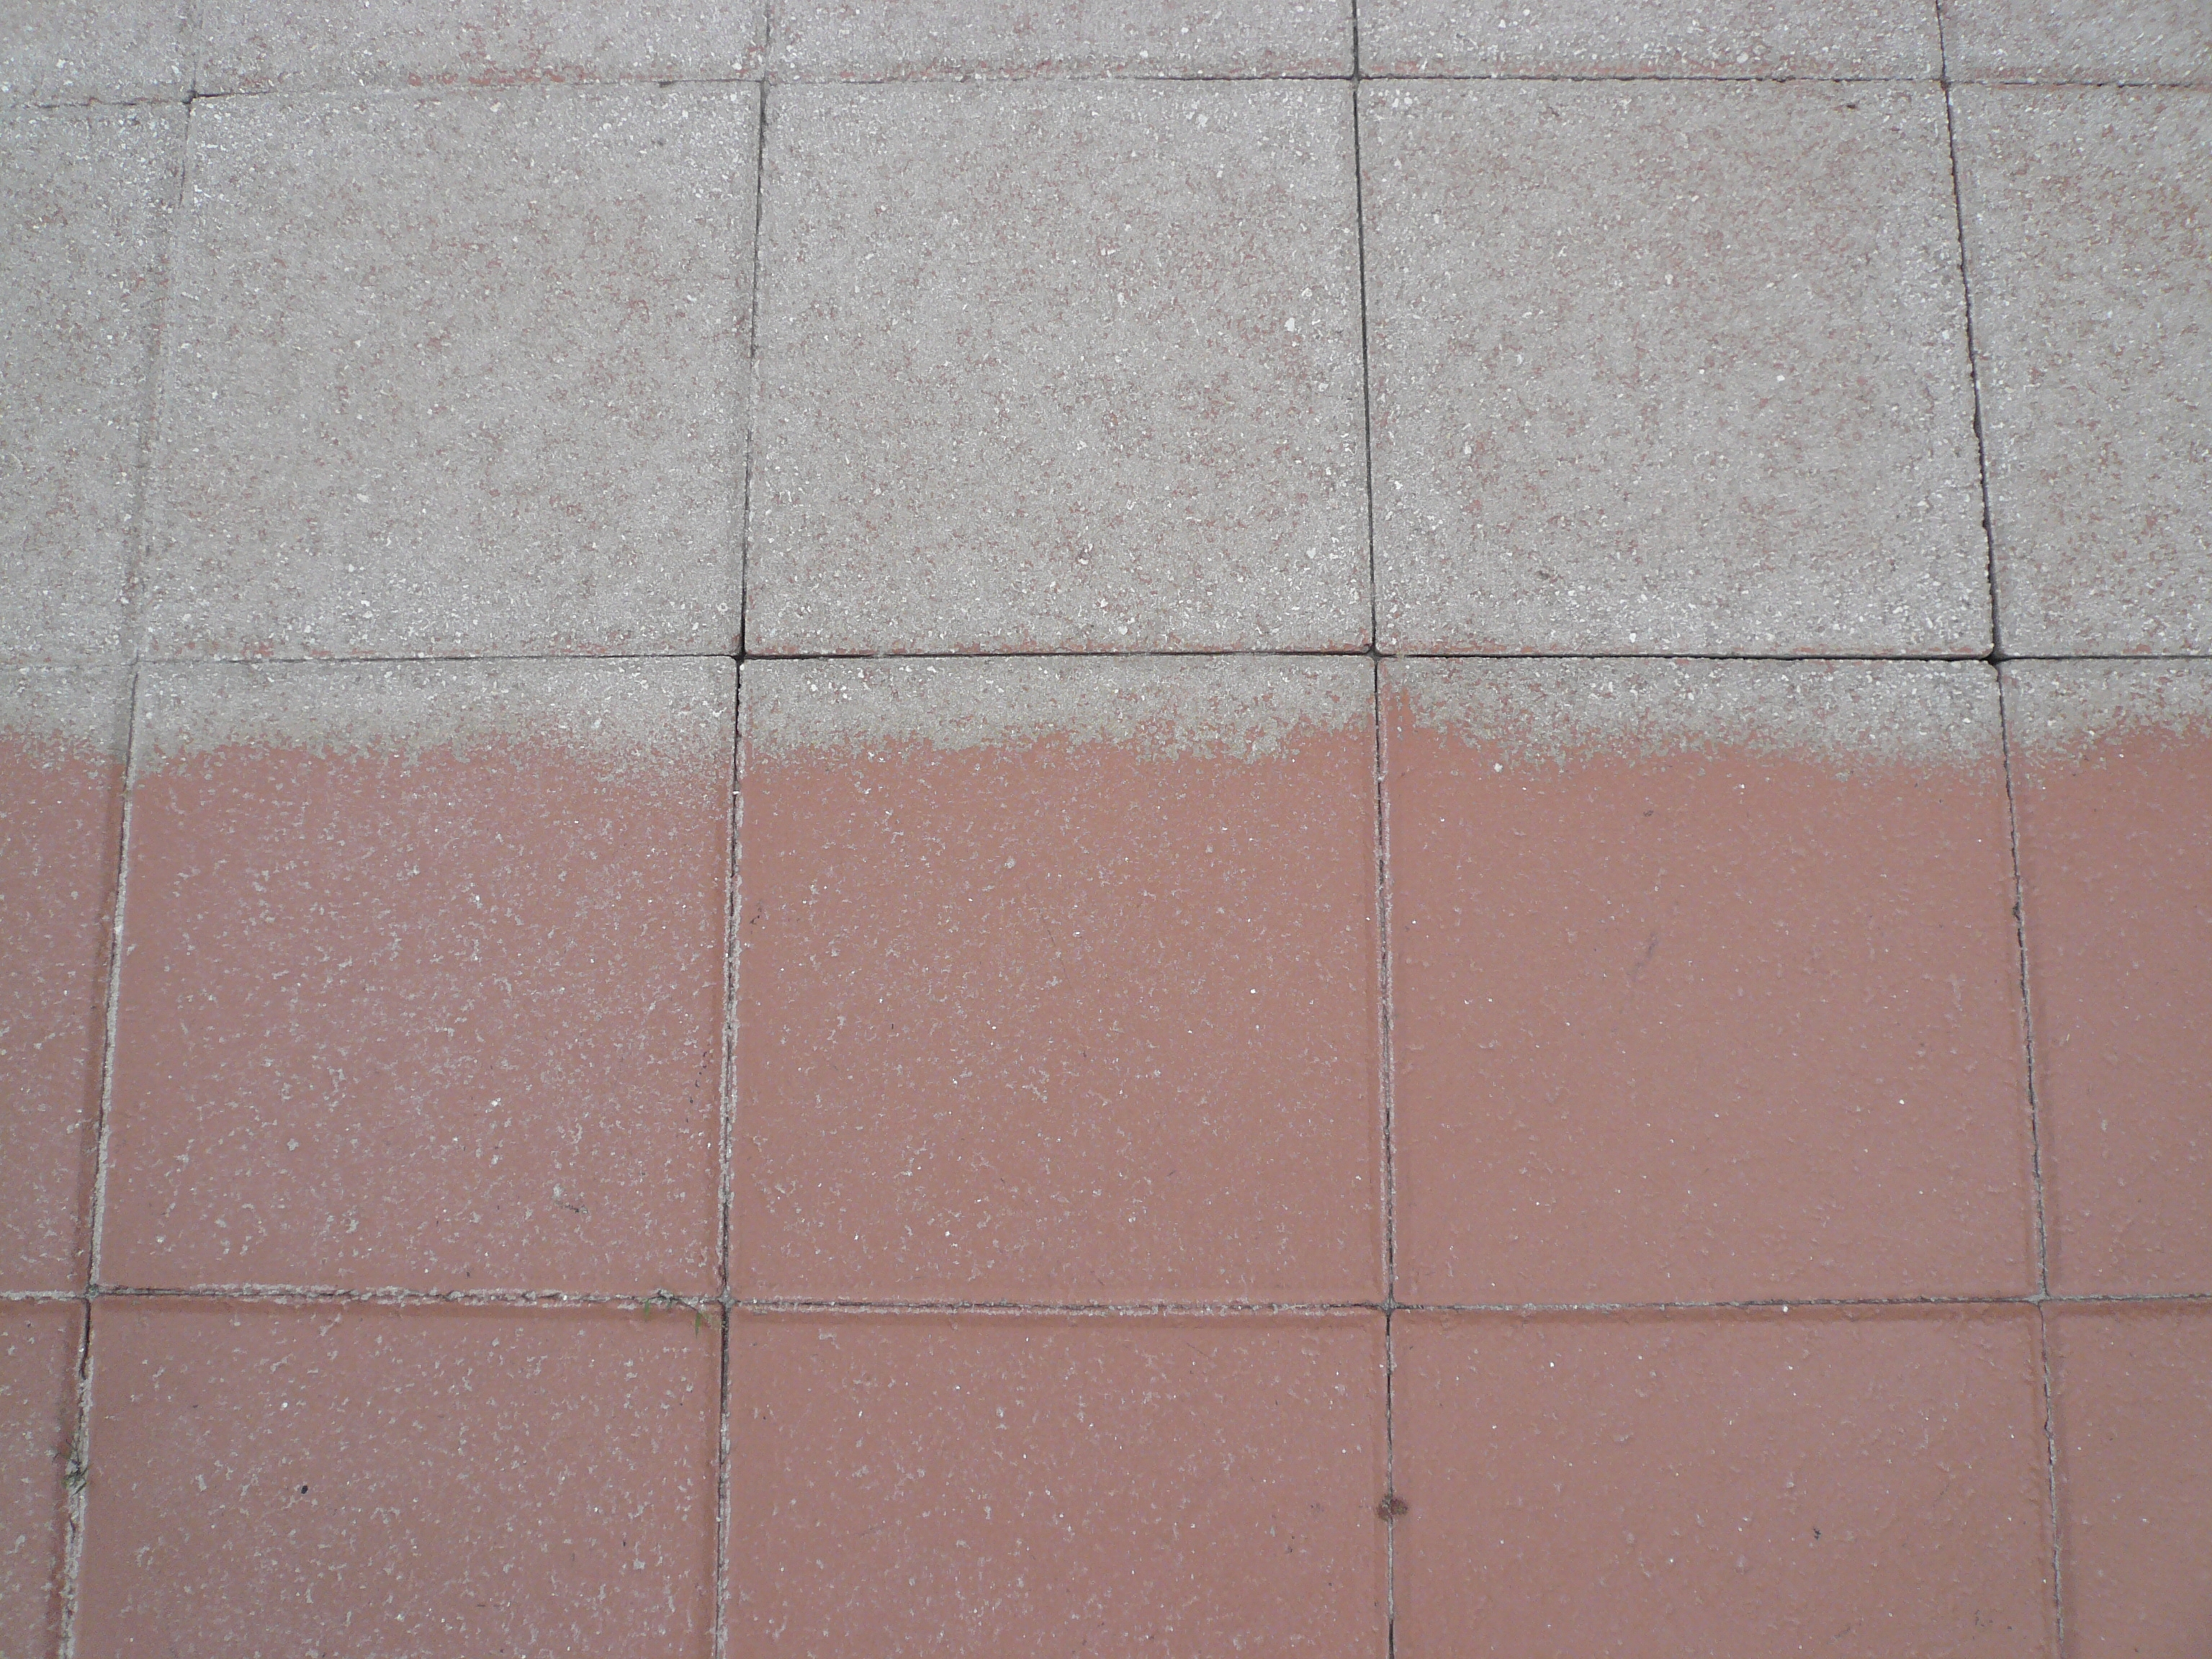 ... Image Result For Sealer For Concrete Patio Pavers ...